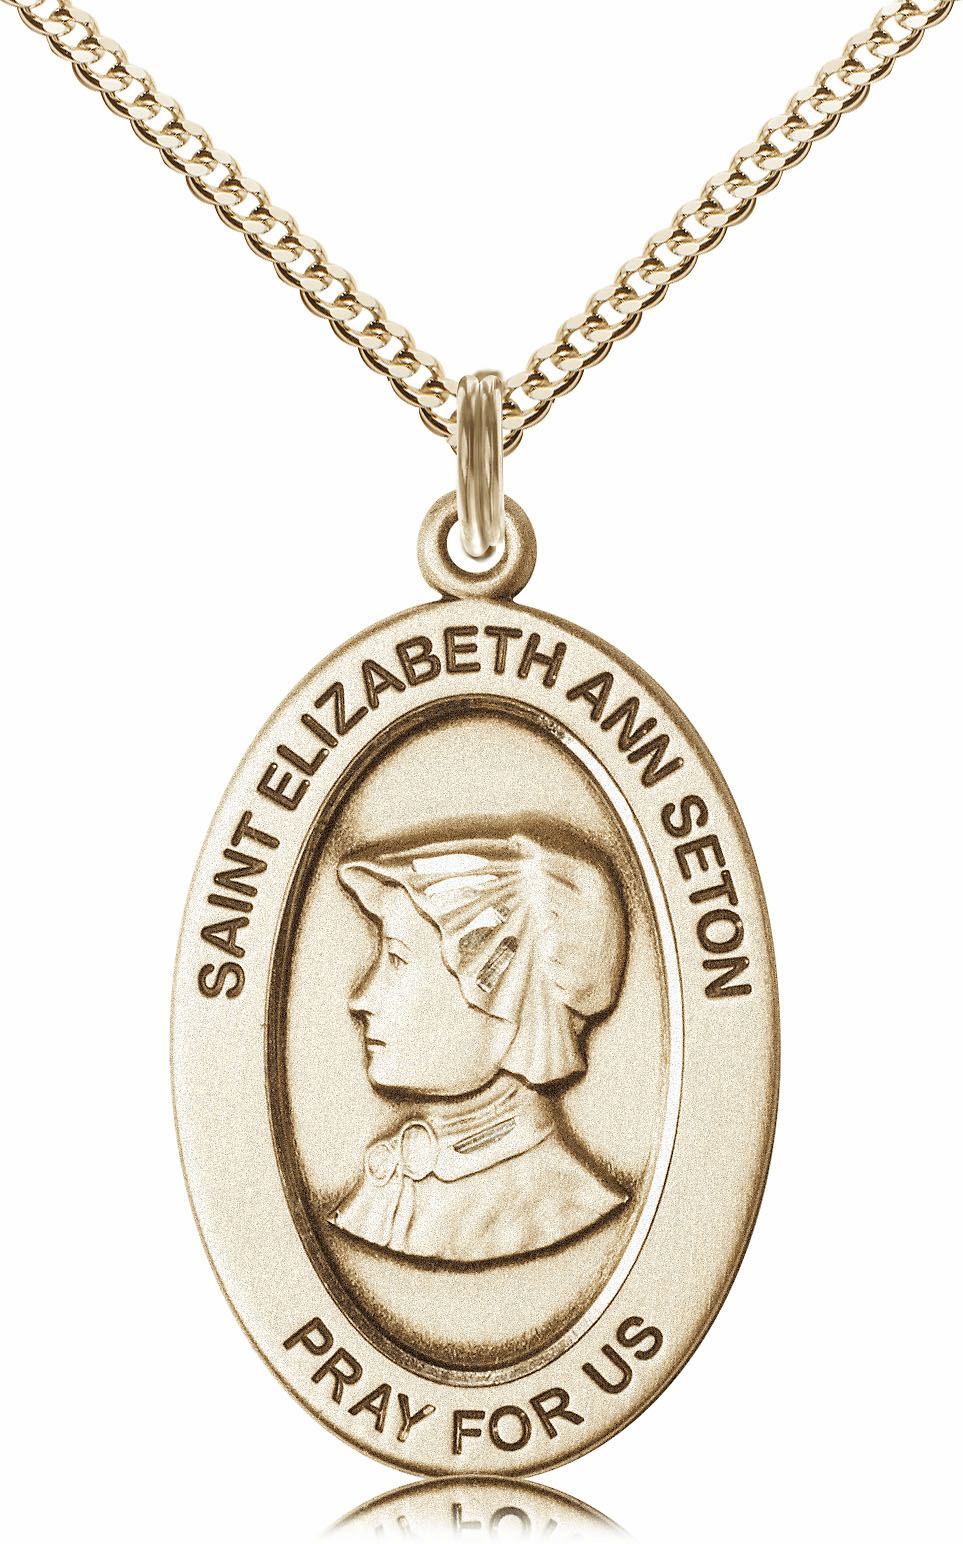 Bliss Mfg Saint Elizabeth Ann Seton 14kt Gold-filled Medal Necklace w/Chain